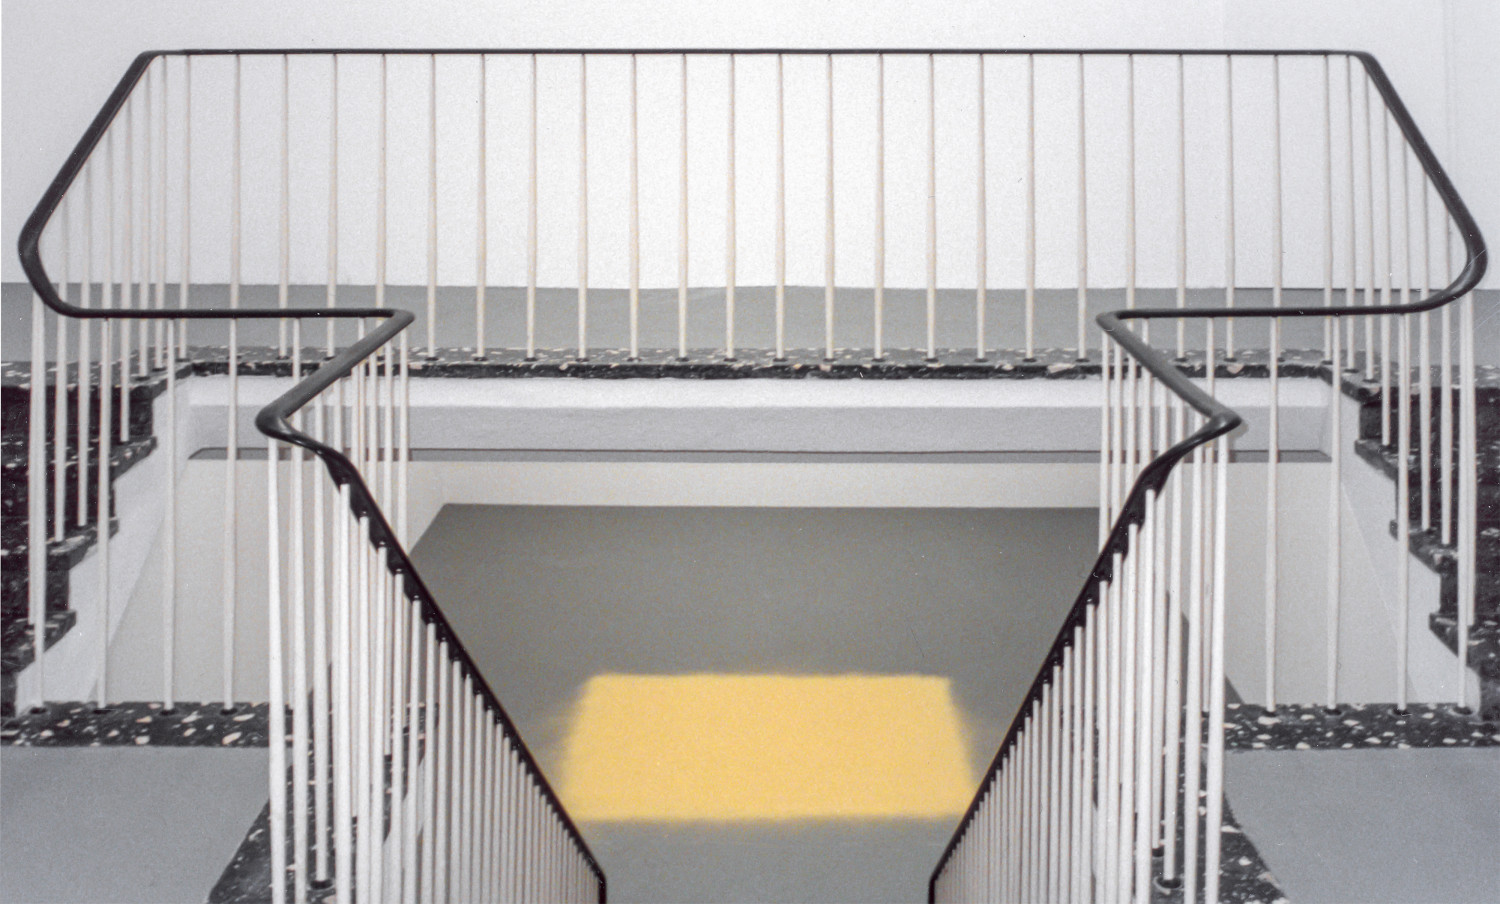 Wolfgang Laib, 'Pollen field', Installation view, 2000